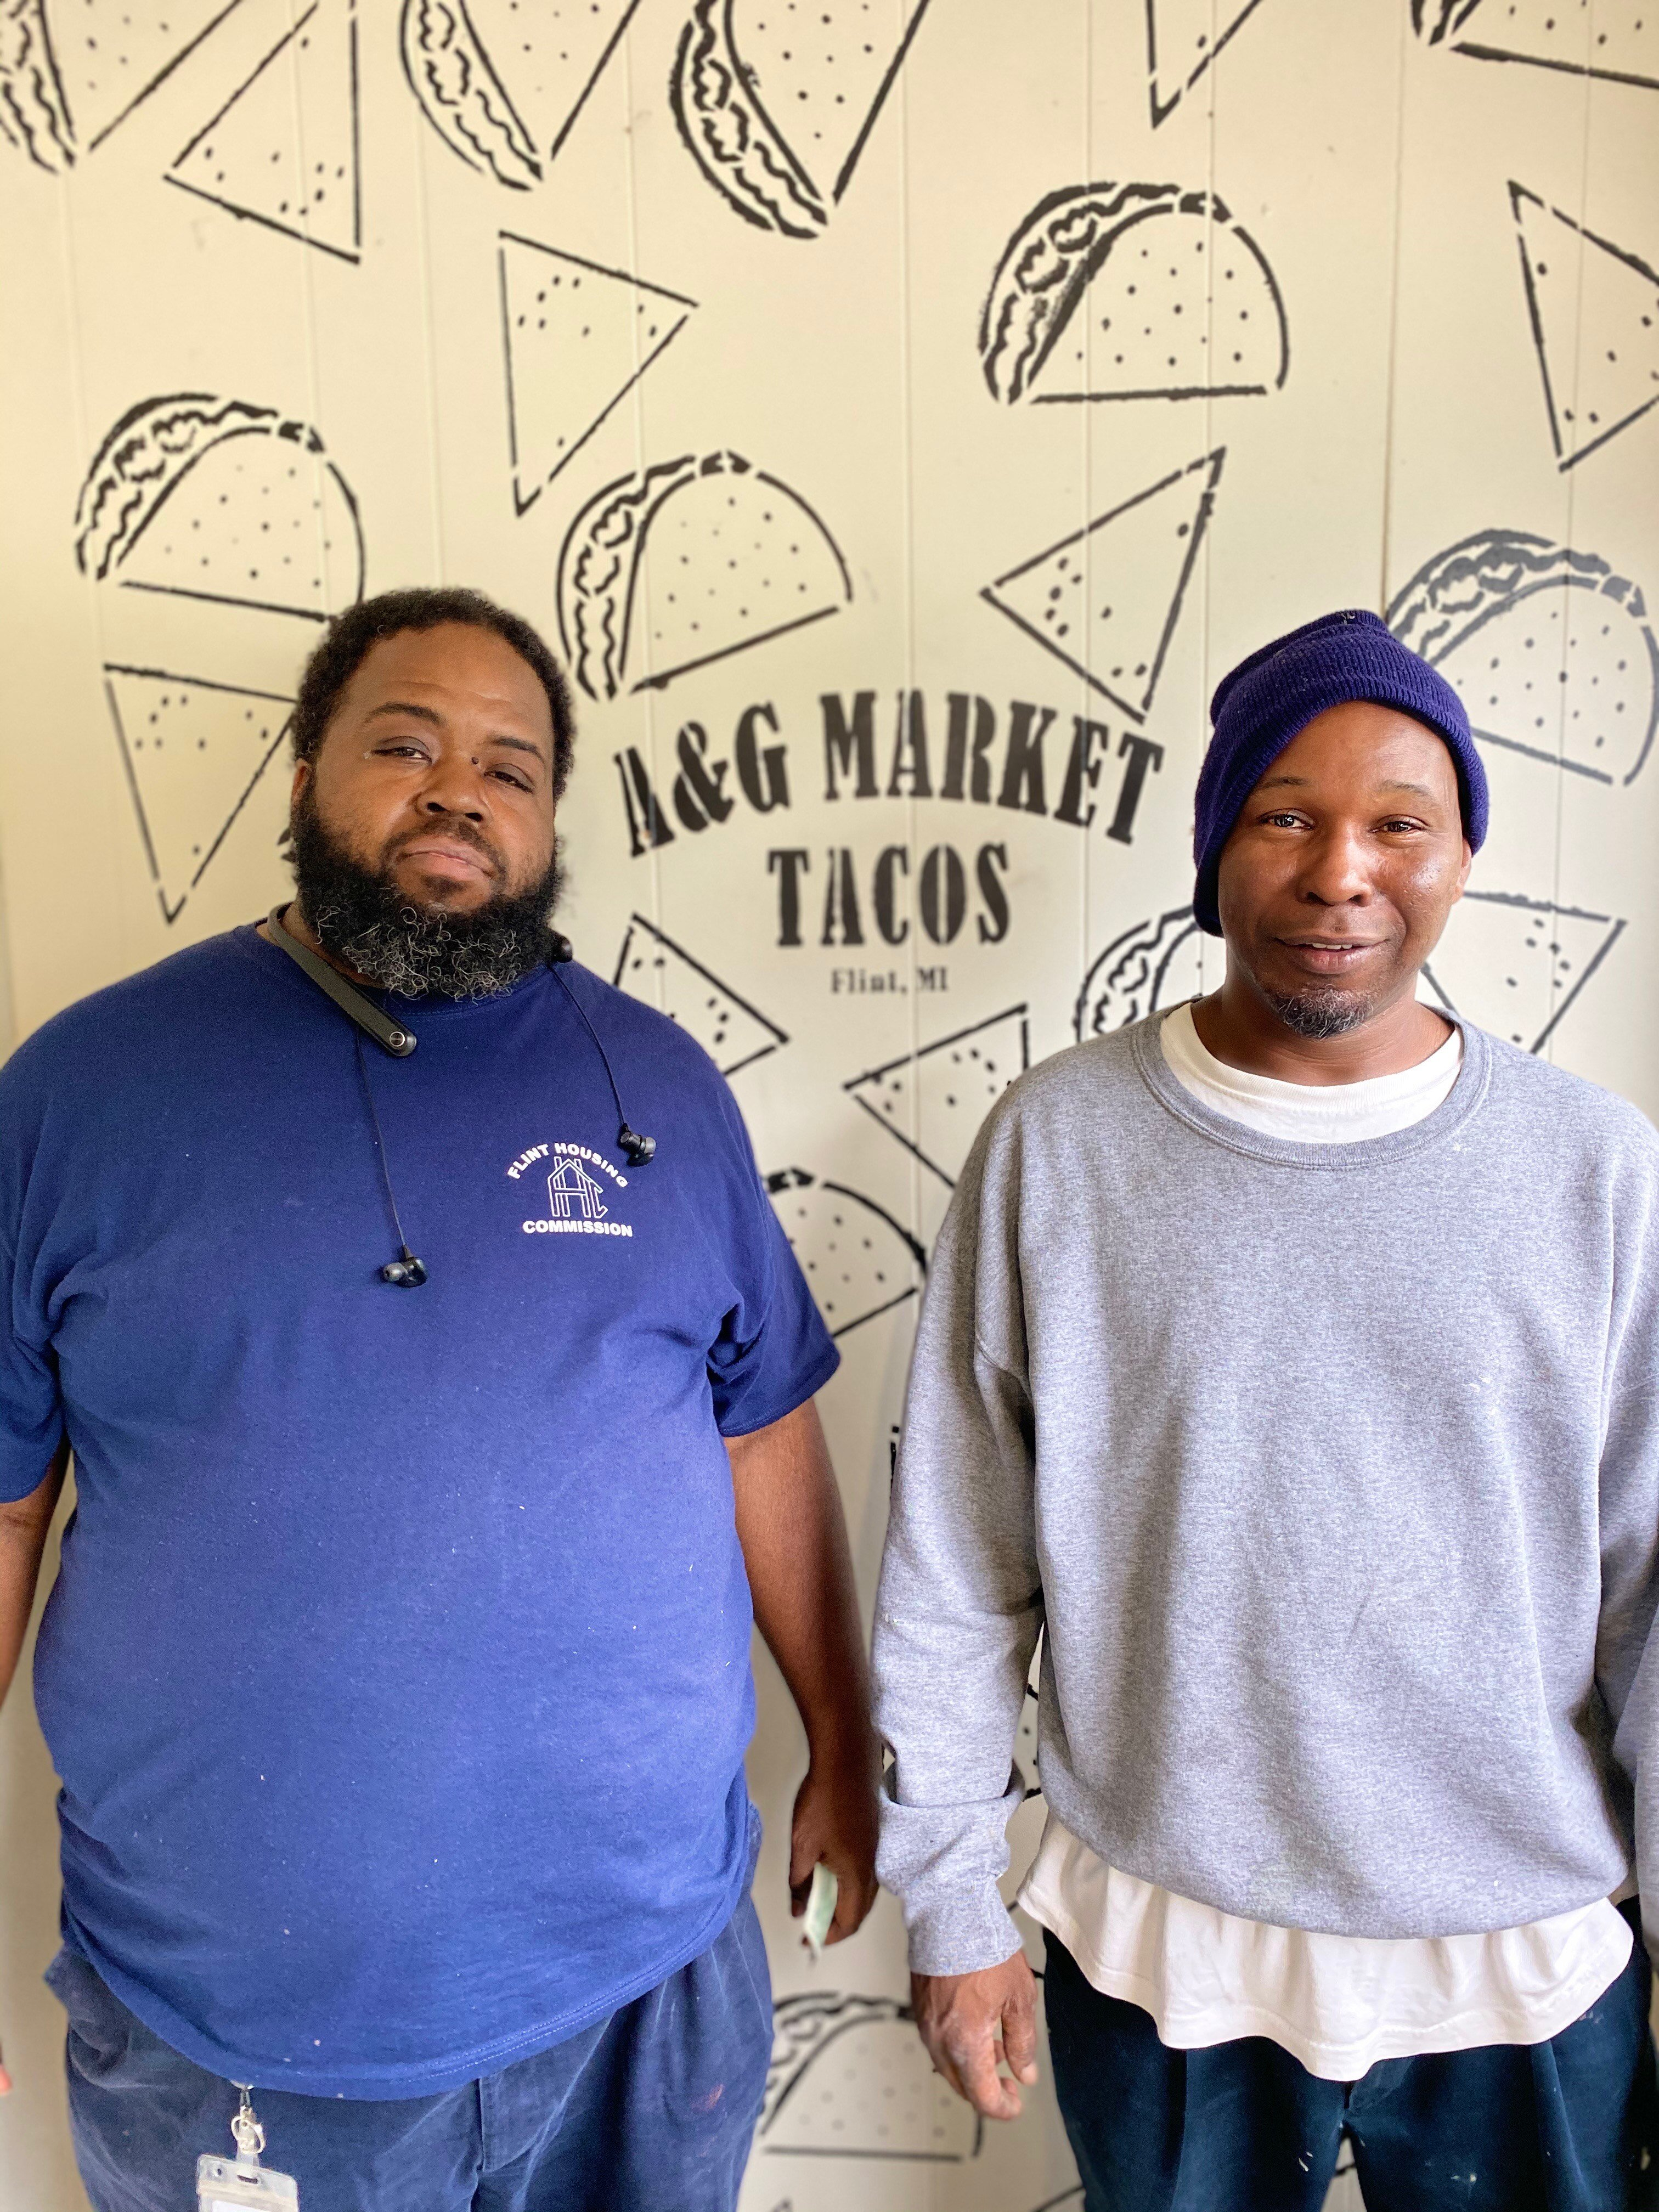 Social Media Moment: customers are encouraged to take a picture in front of the taco wall and post to their social media with the chance to make it to the Wall of Fame.